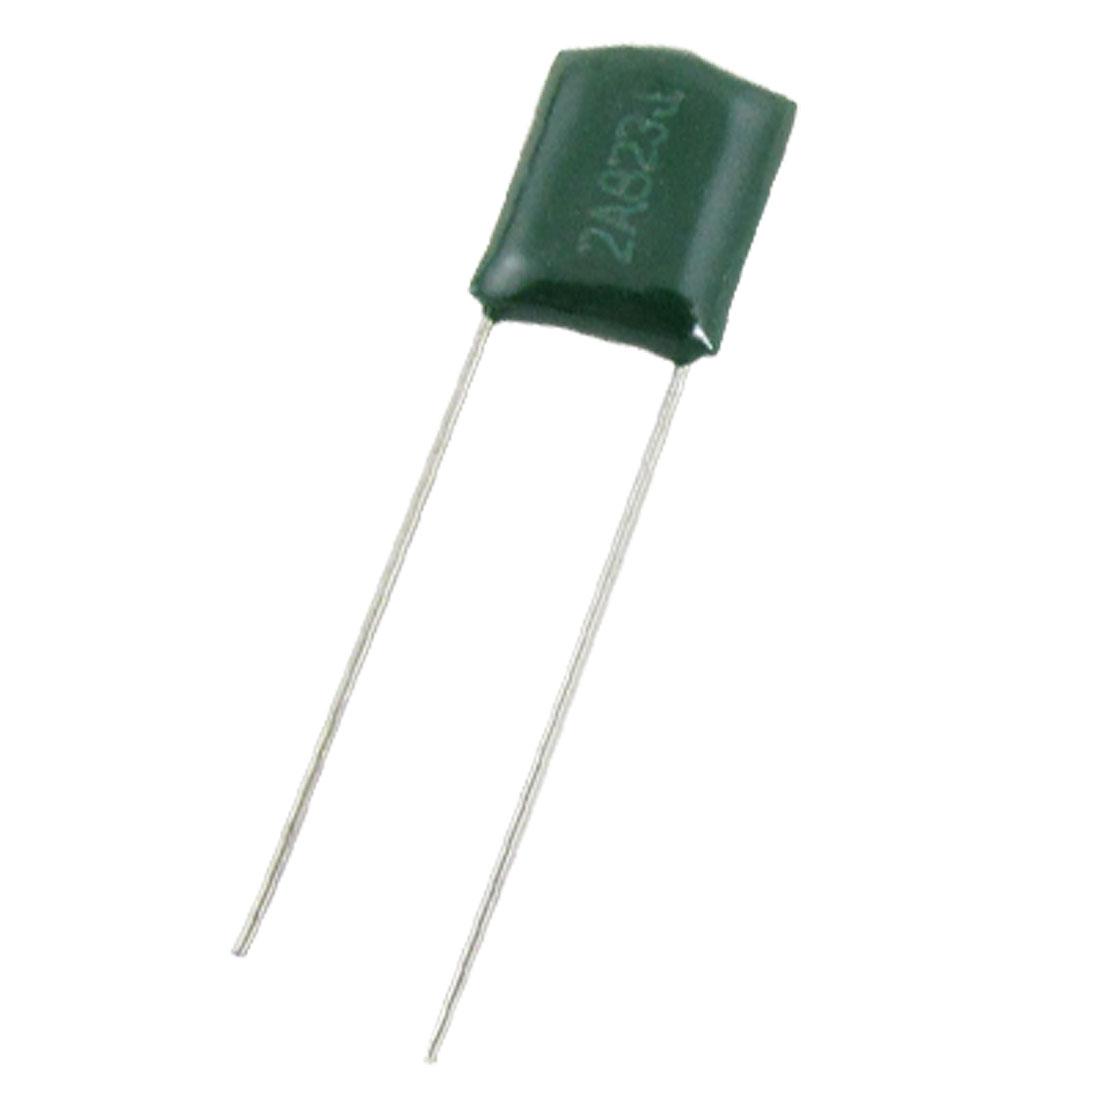 0.082uF 82nF 82000pF 5% DIP Polyester Film Capacitors(Bag of 100)